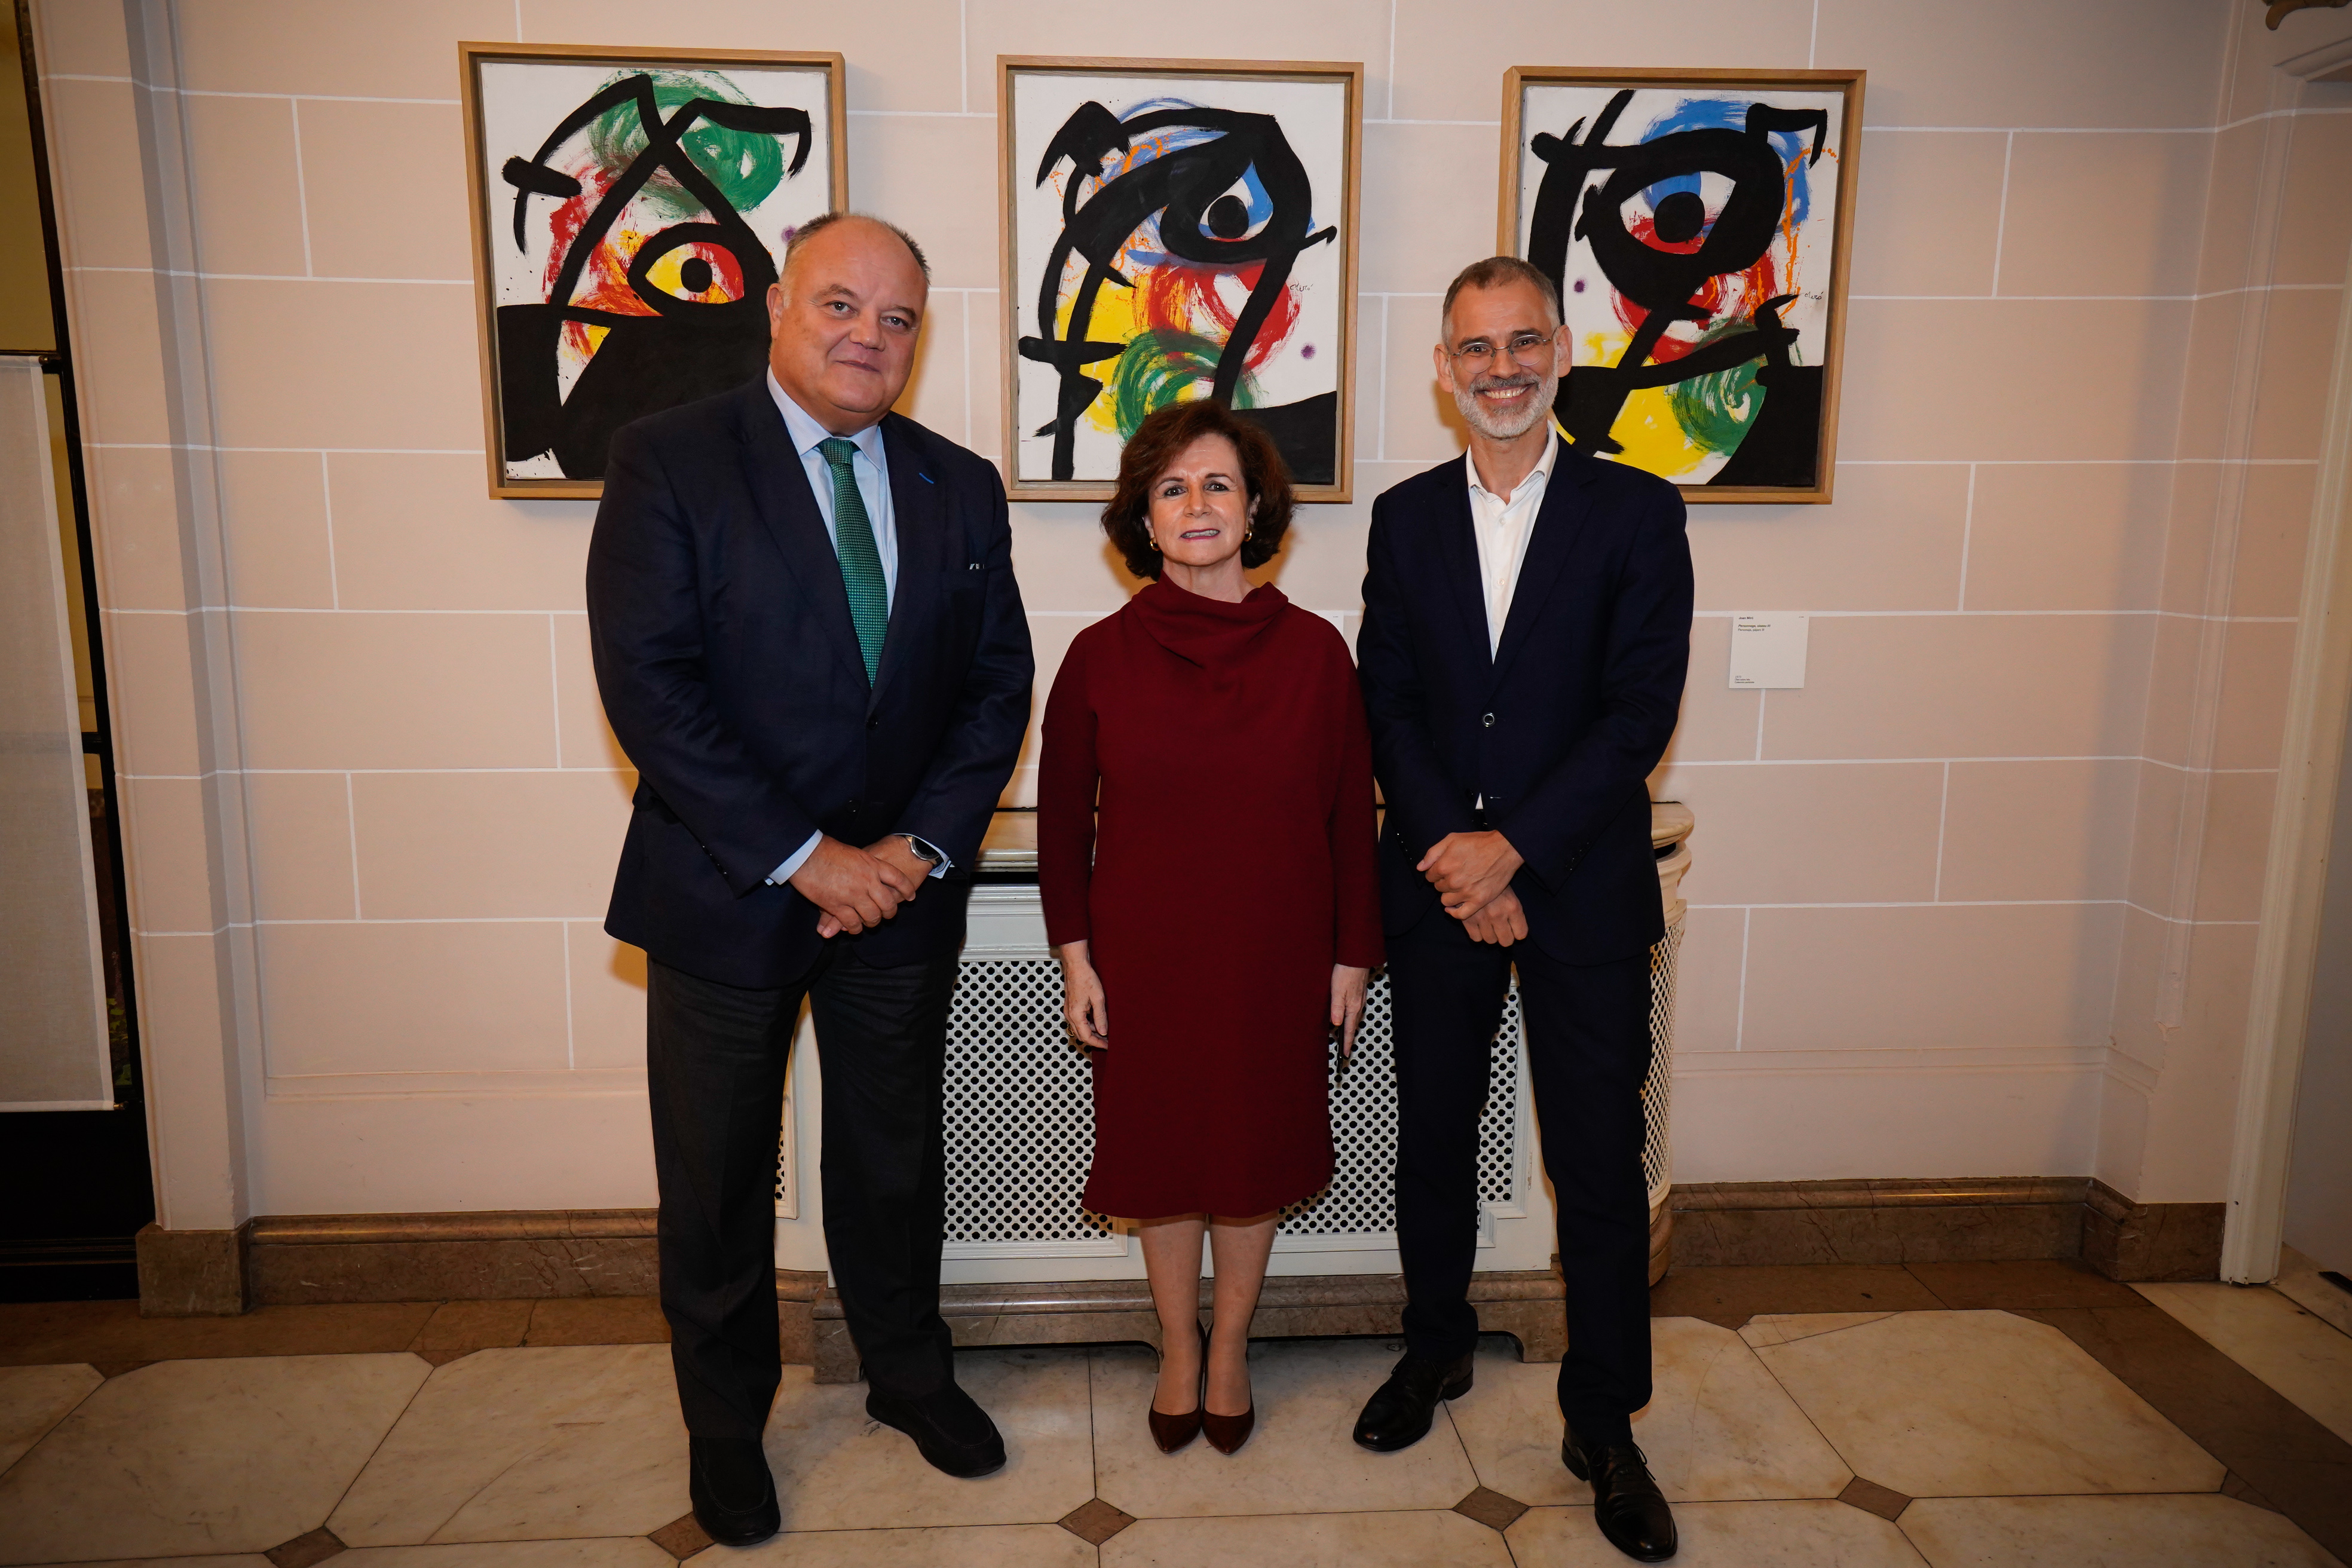 The traveling exhibition of Miró organized by the Abertis Foundation, the Fundació Joan Miró and the Ministry of Foreign Affairs, arrives in Brussels (Belgium)